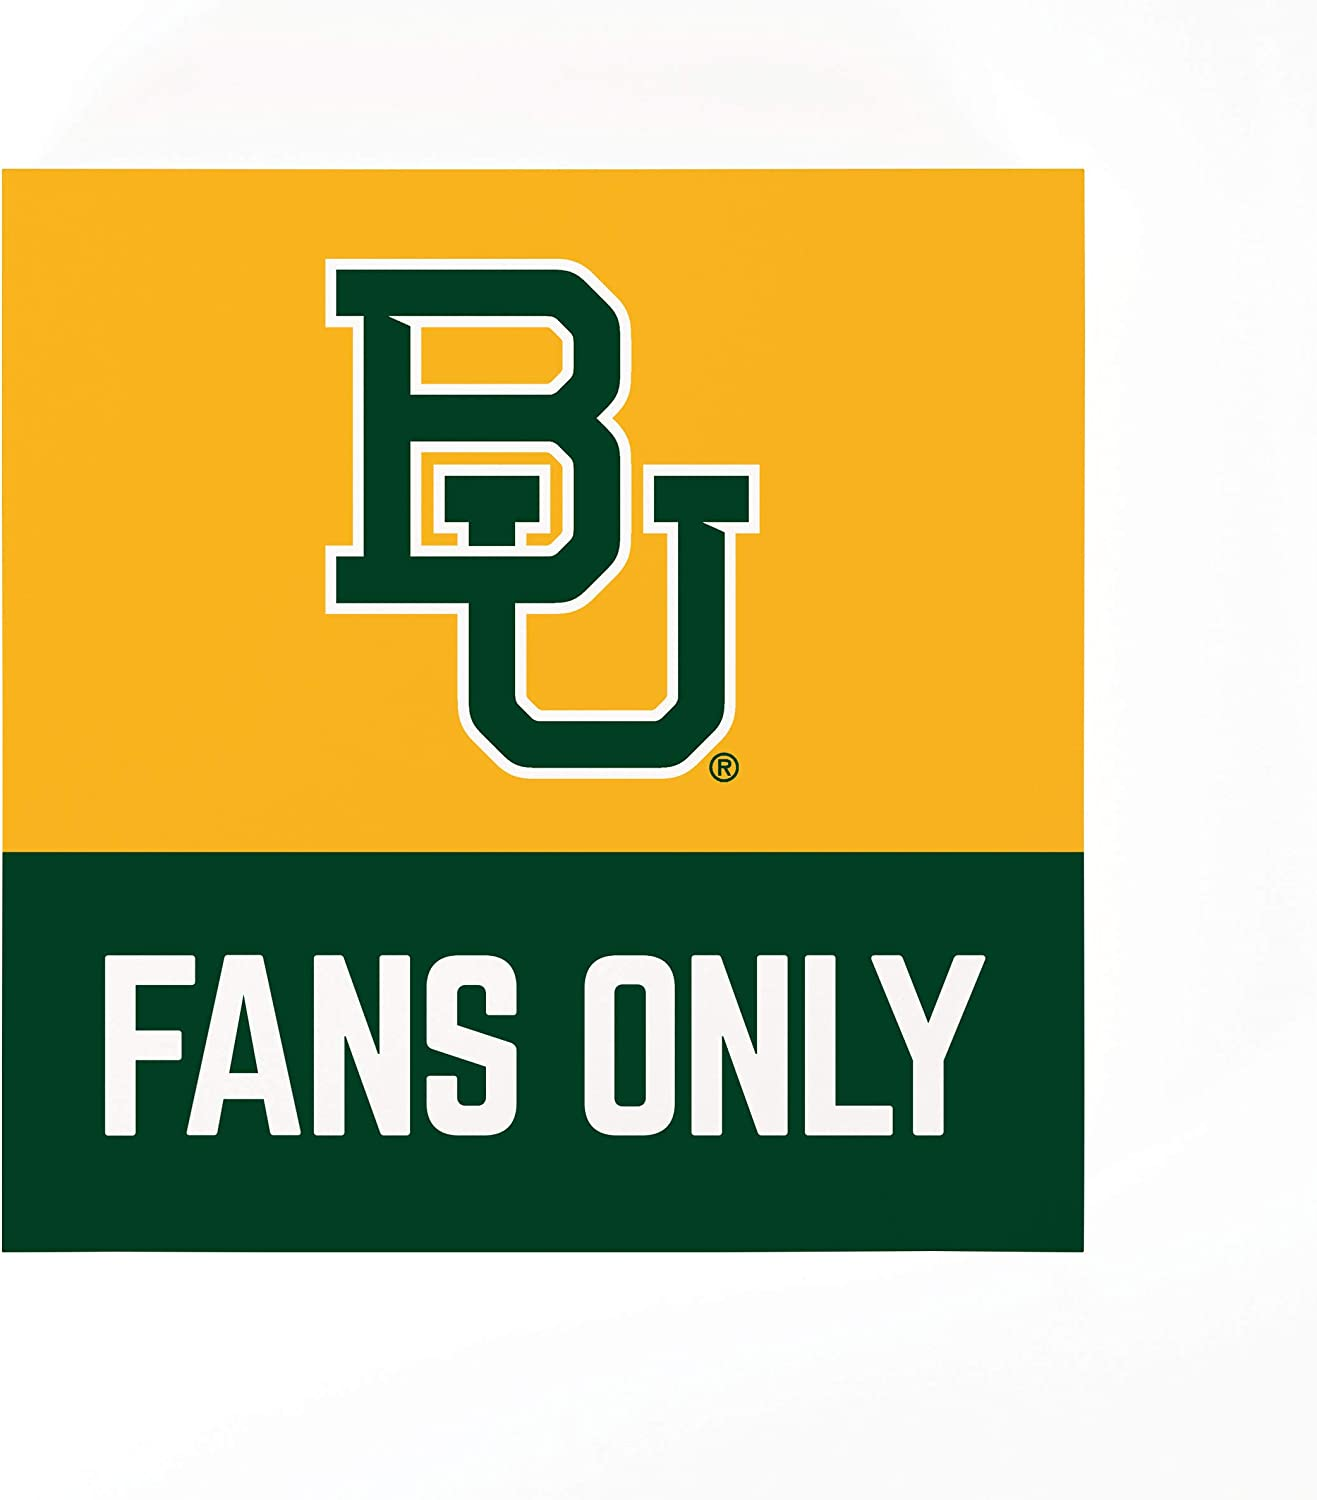 P. Graham Dunn Baylor University Fans Only 5.5 x 5.5 MDF Wood Tabletop Word Block Sign